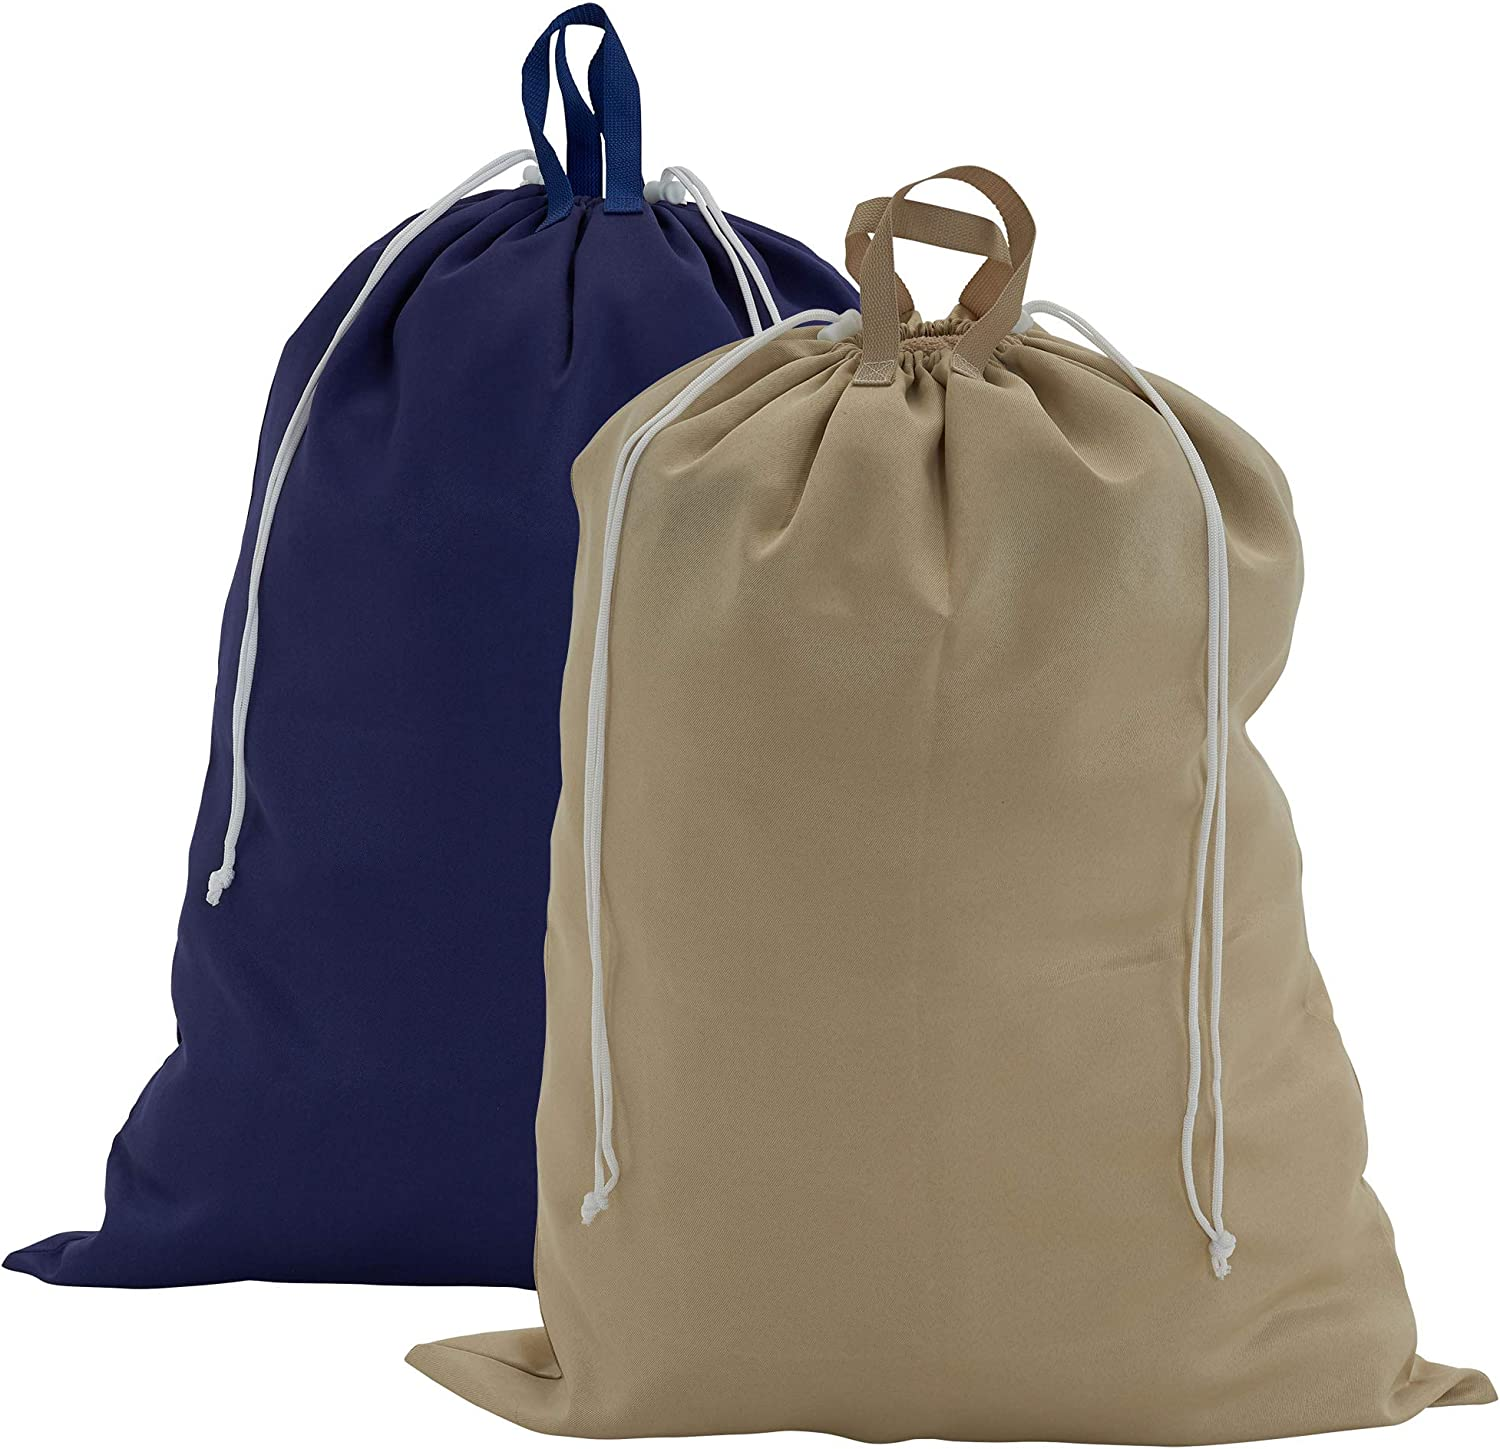 Household Essentials Blue and Beige 136-1 Set of 2 Large Laundry Bags with Handles and Drawstring